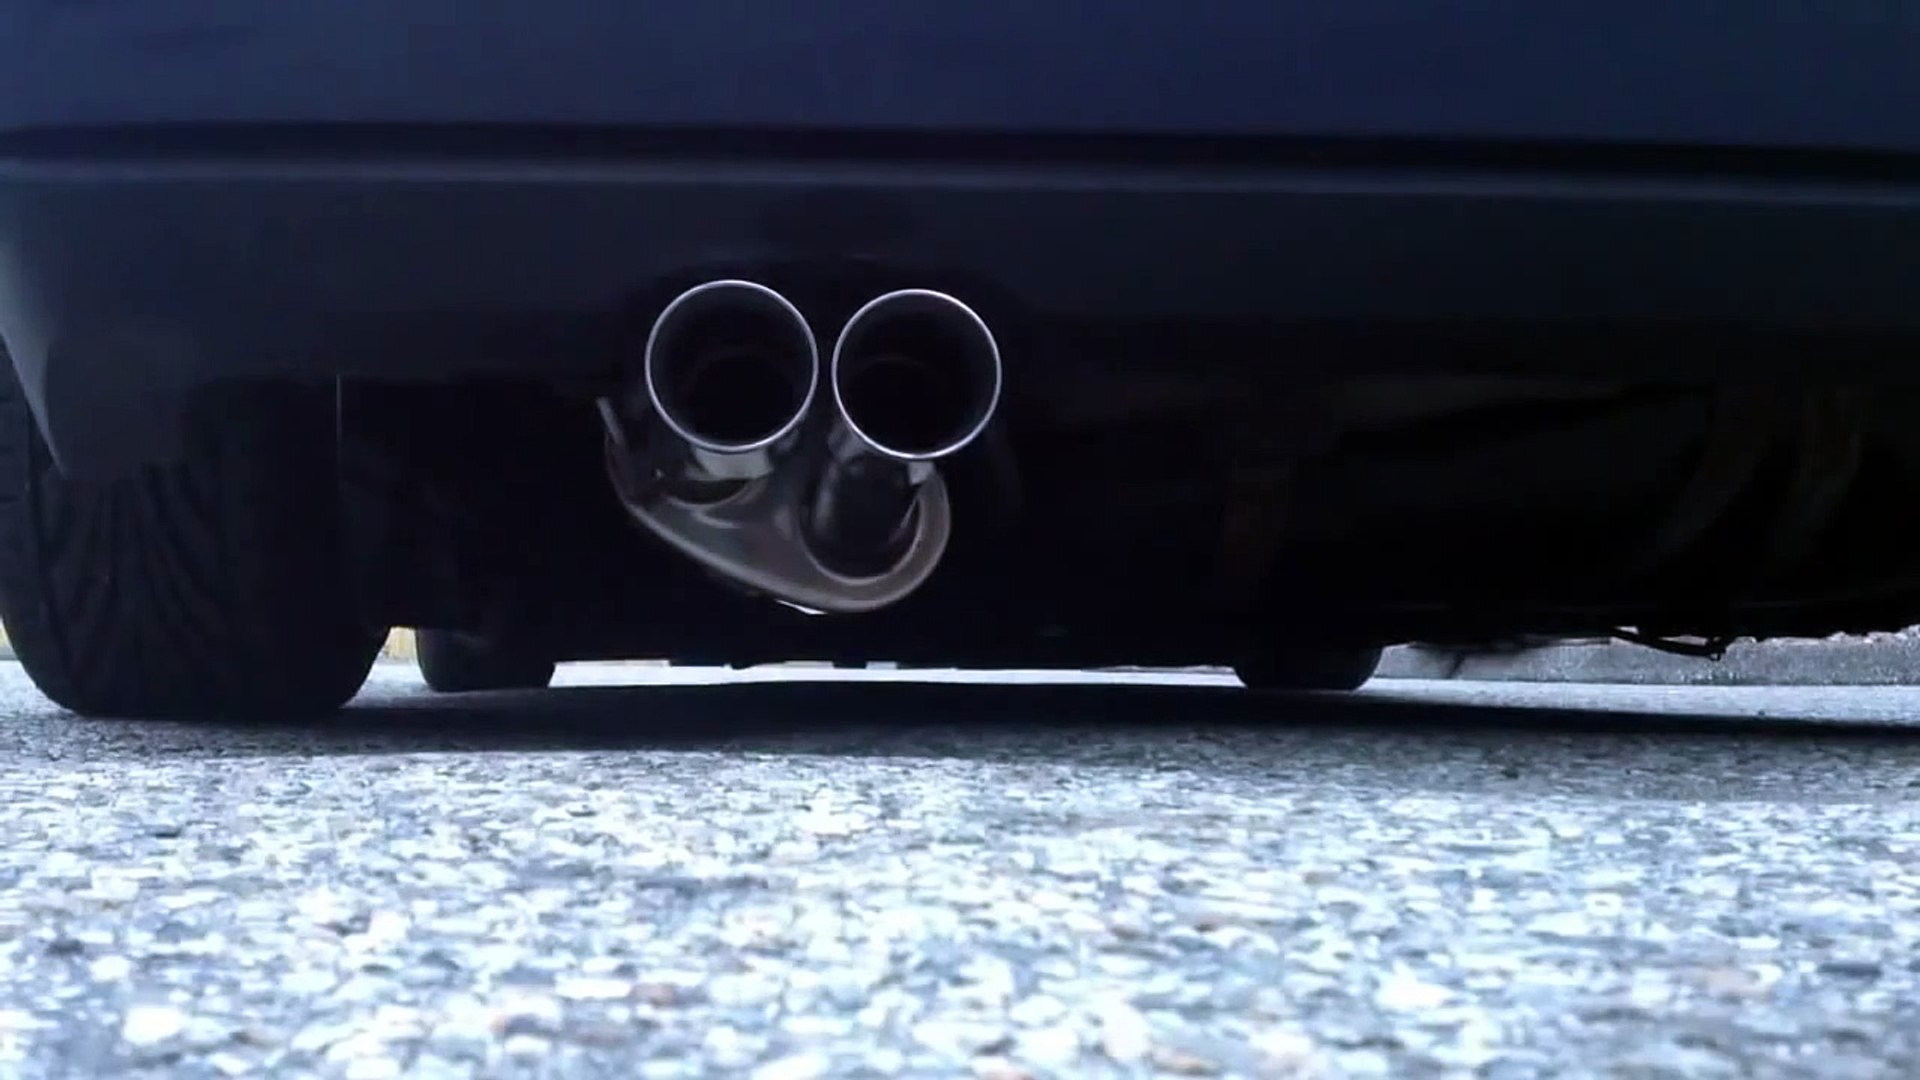 Vw Golf 3 Vr6 Exhaust 2 5 Test Pipe Video Dailymotion